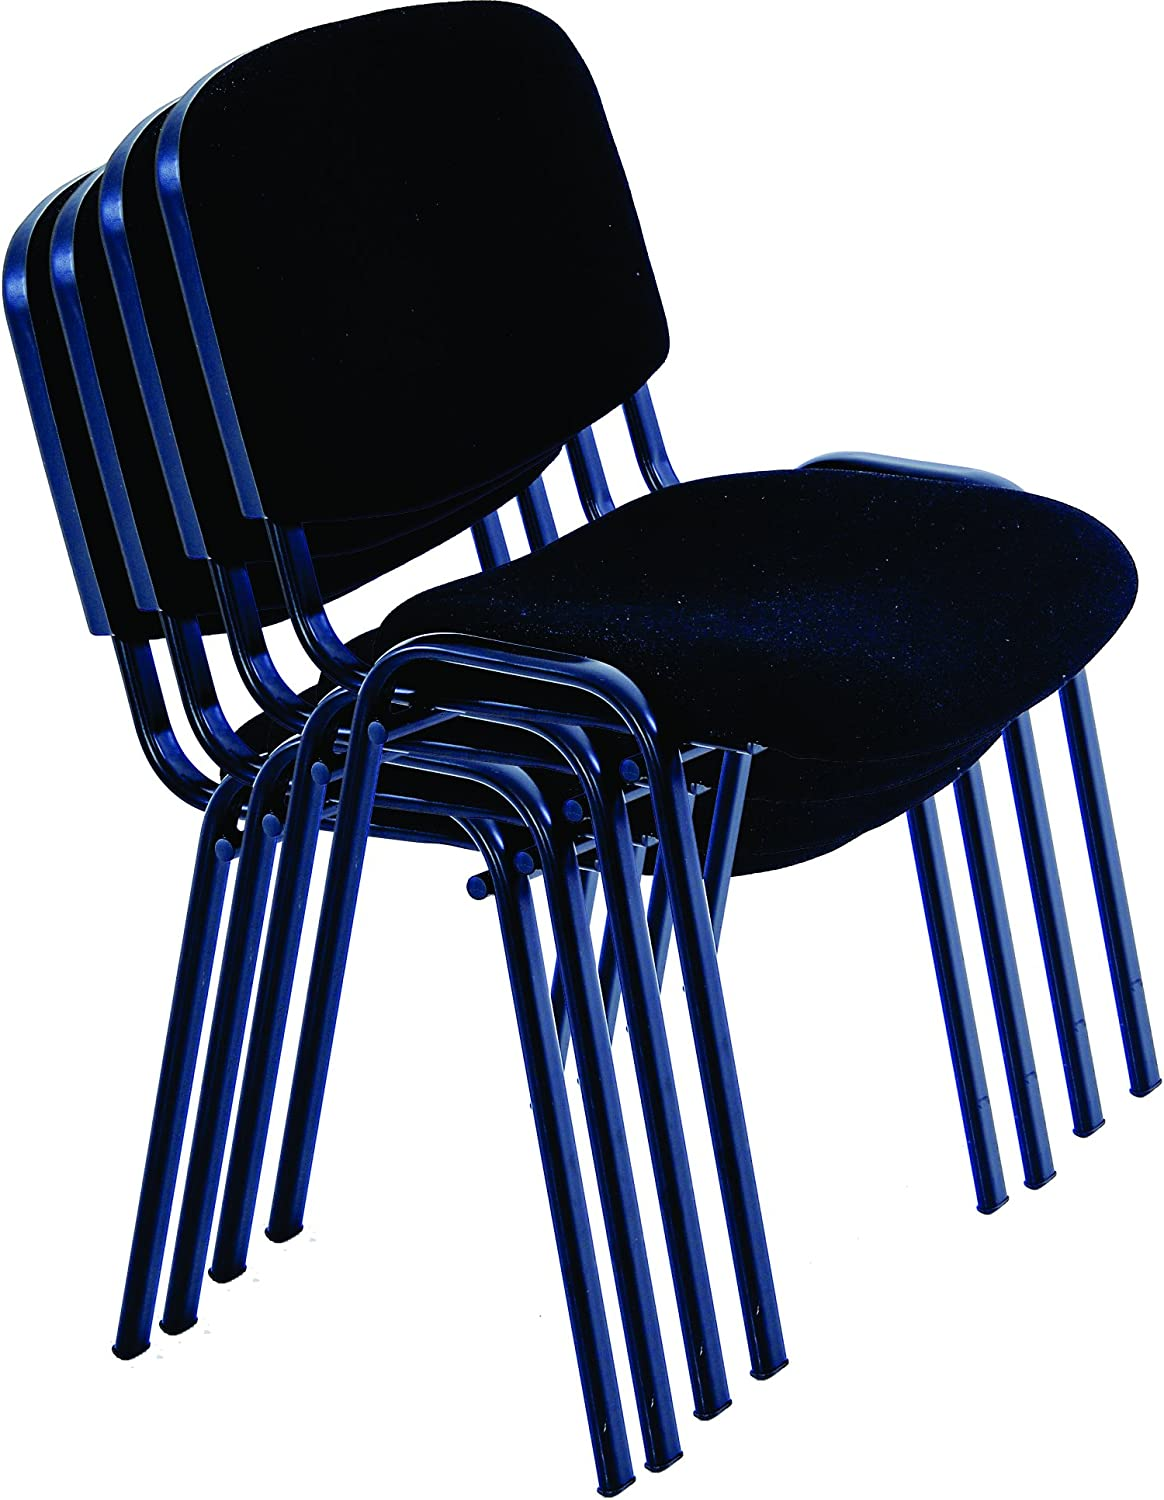 Modern Black Stacking Office Chairs for Office, Training, Conference, Church, Community Centres, Home, Canteen, Hotel, Waiting Room, Events, Office, Reception Area